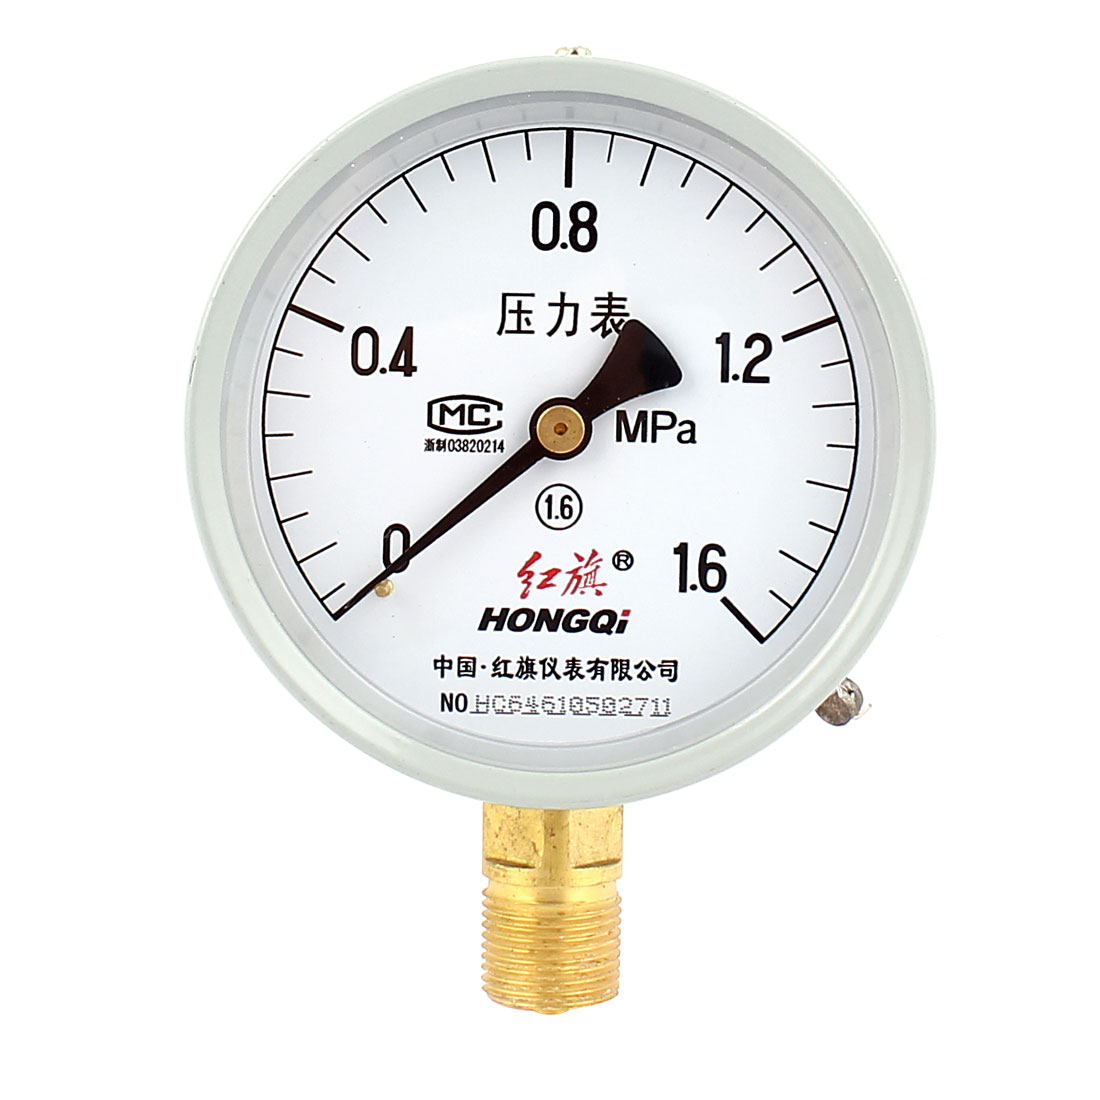 Air Compressor 1/2BSP Male Thread Dial Pressure Gauge 0-1.6Mpa